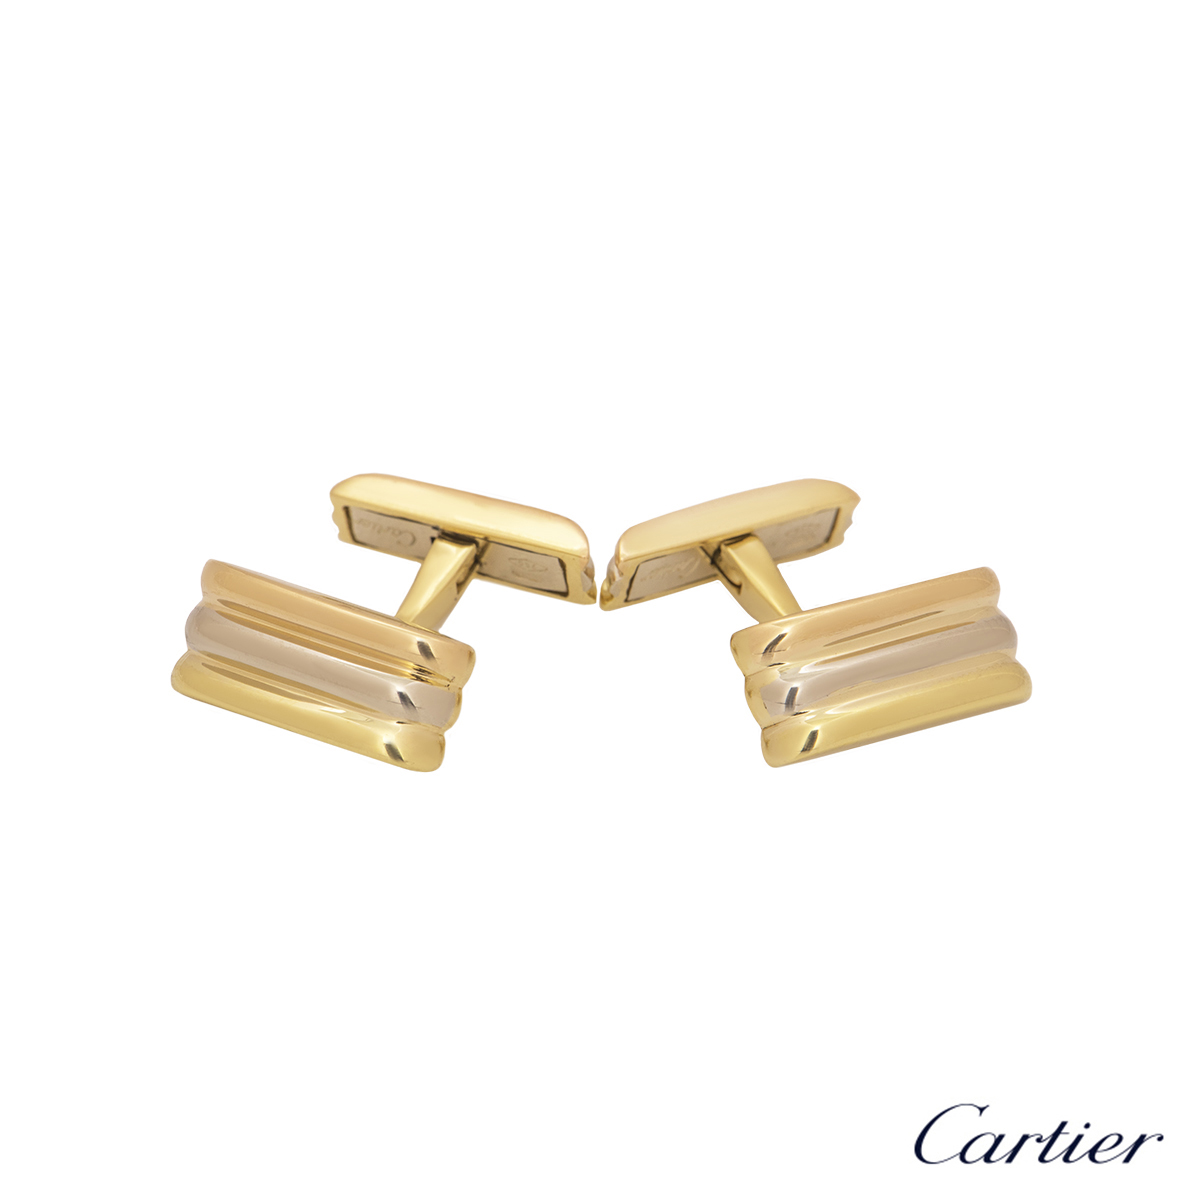 Cartier Tri-Colour Trinity De Cartier Cufflinks